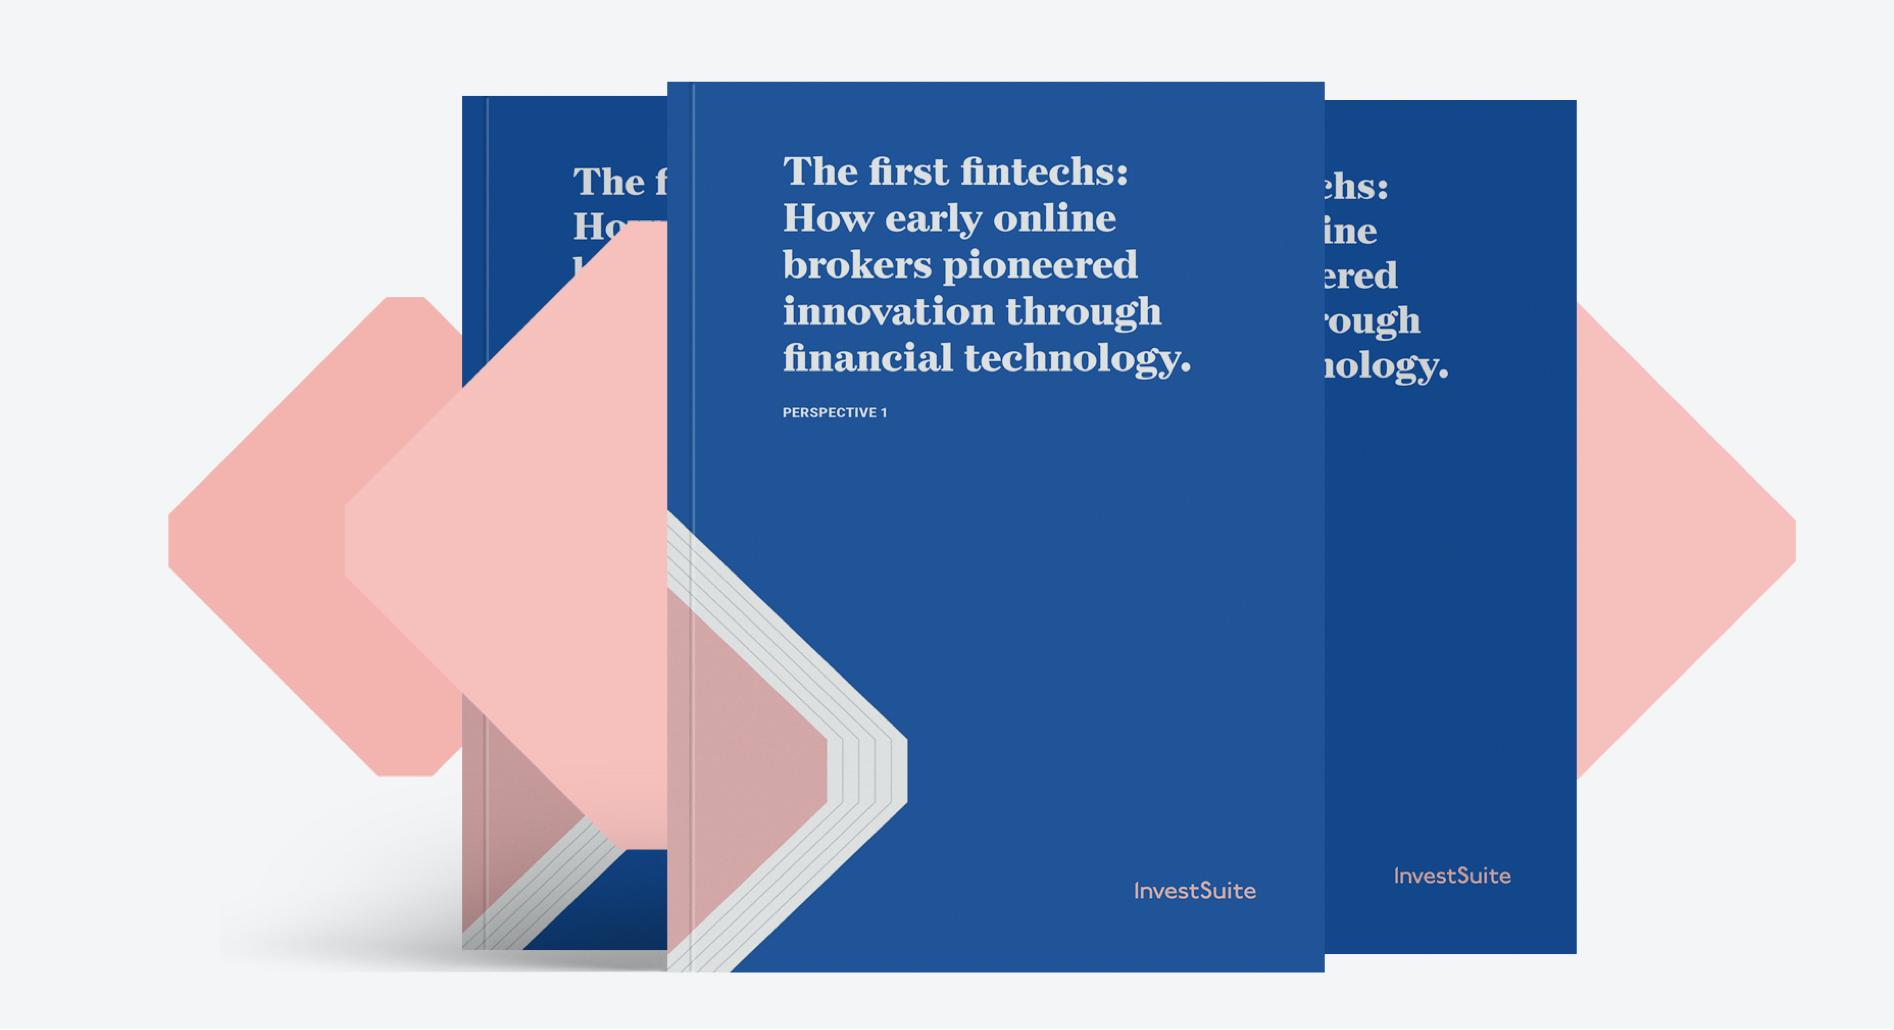 Innovation lessons from the first fintechs